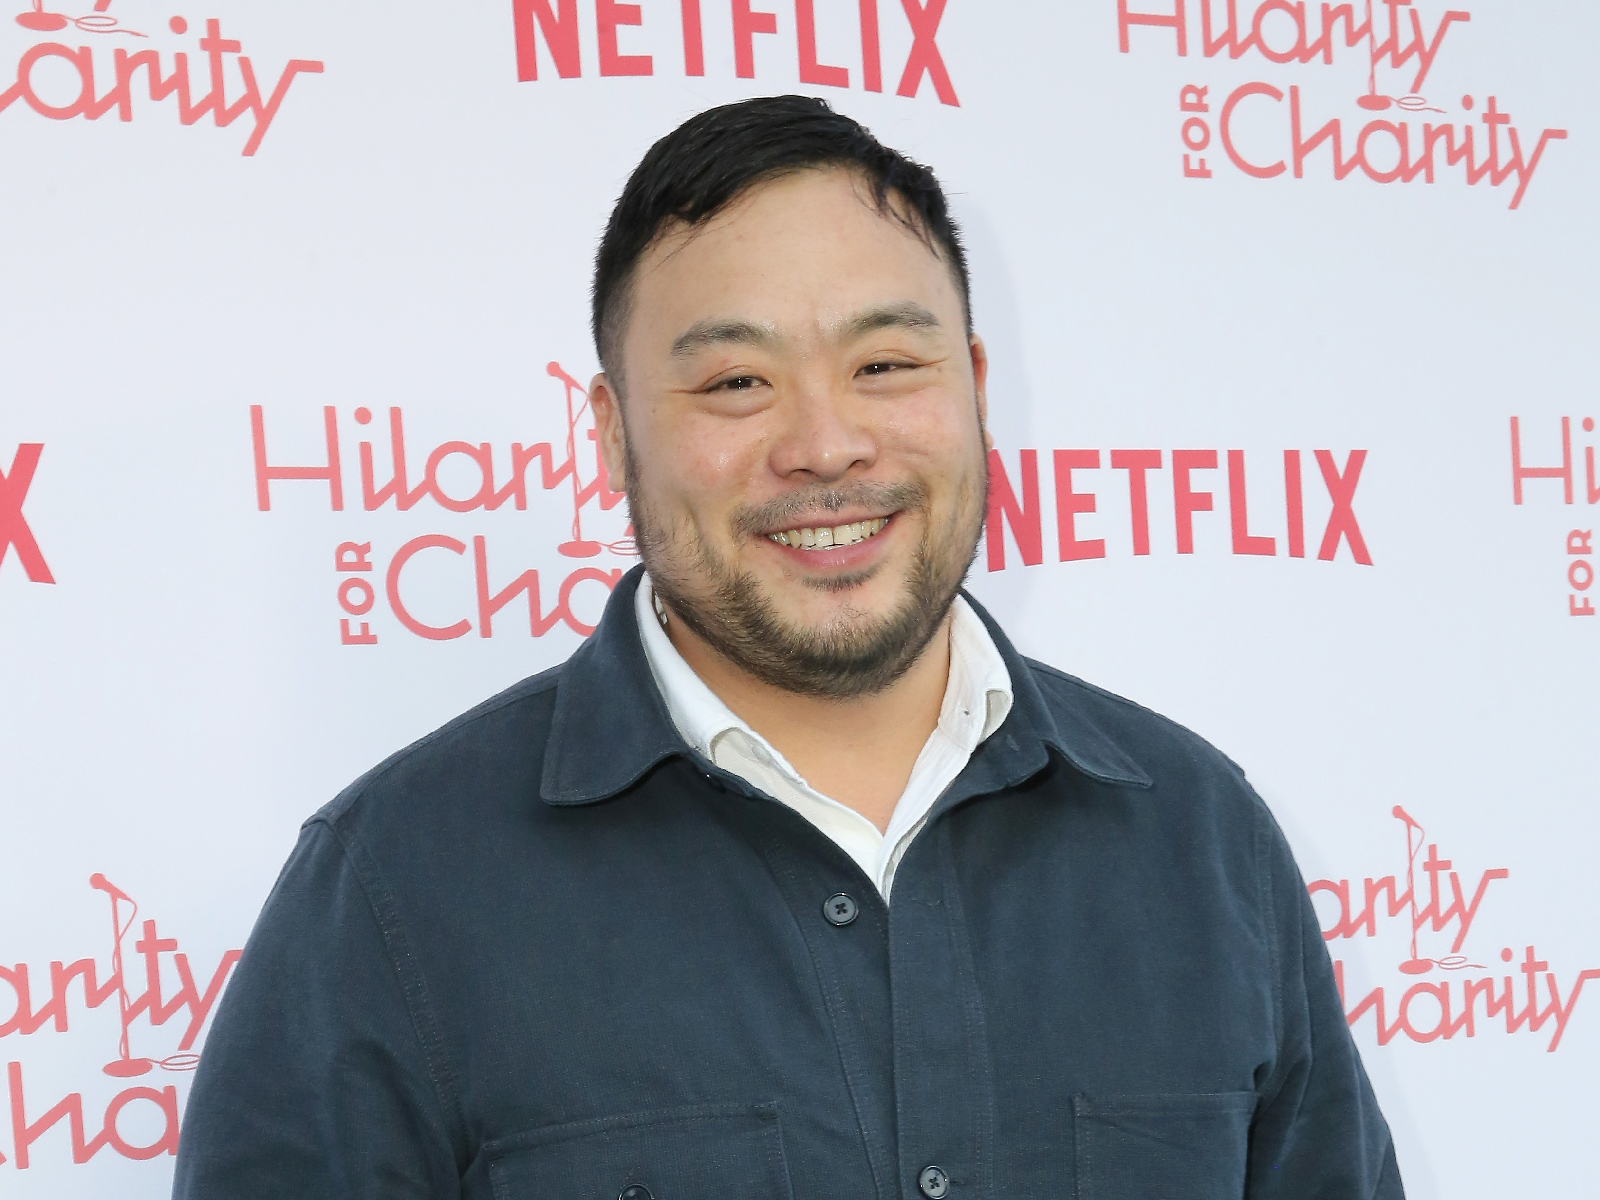 David Chang's Second Netflix Series Arrives This Fall